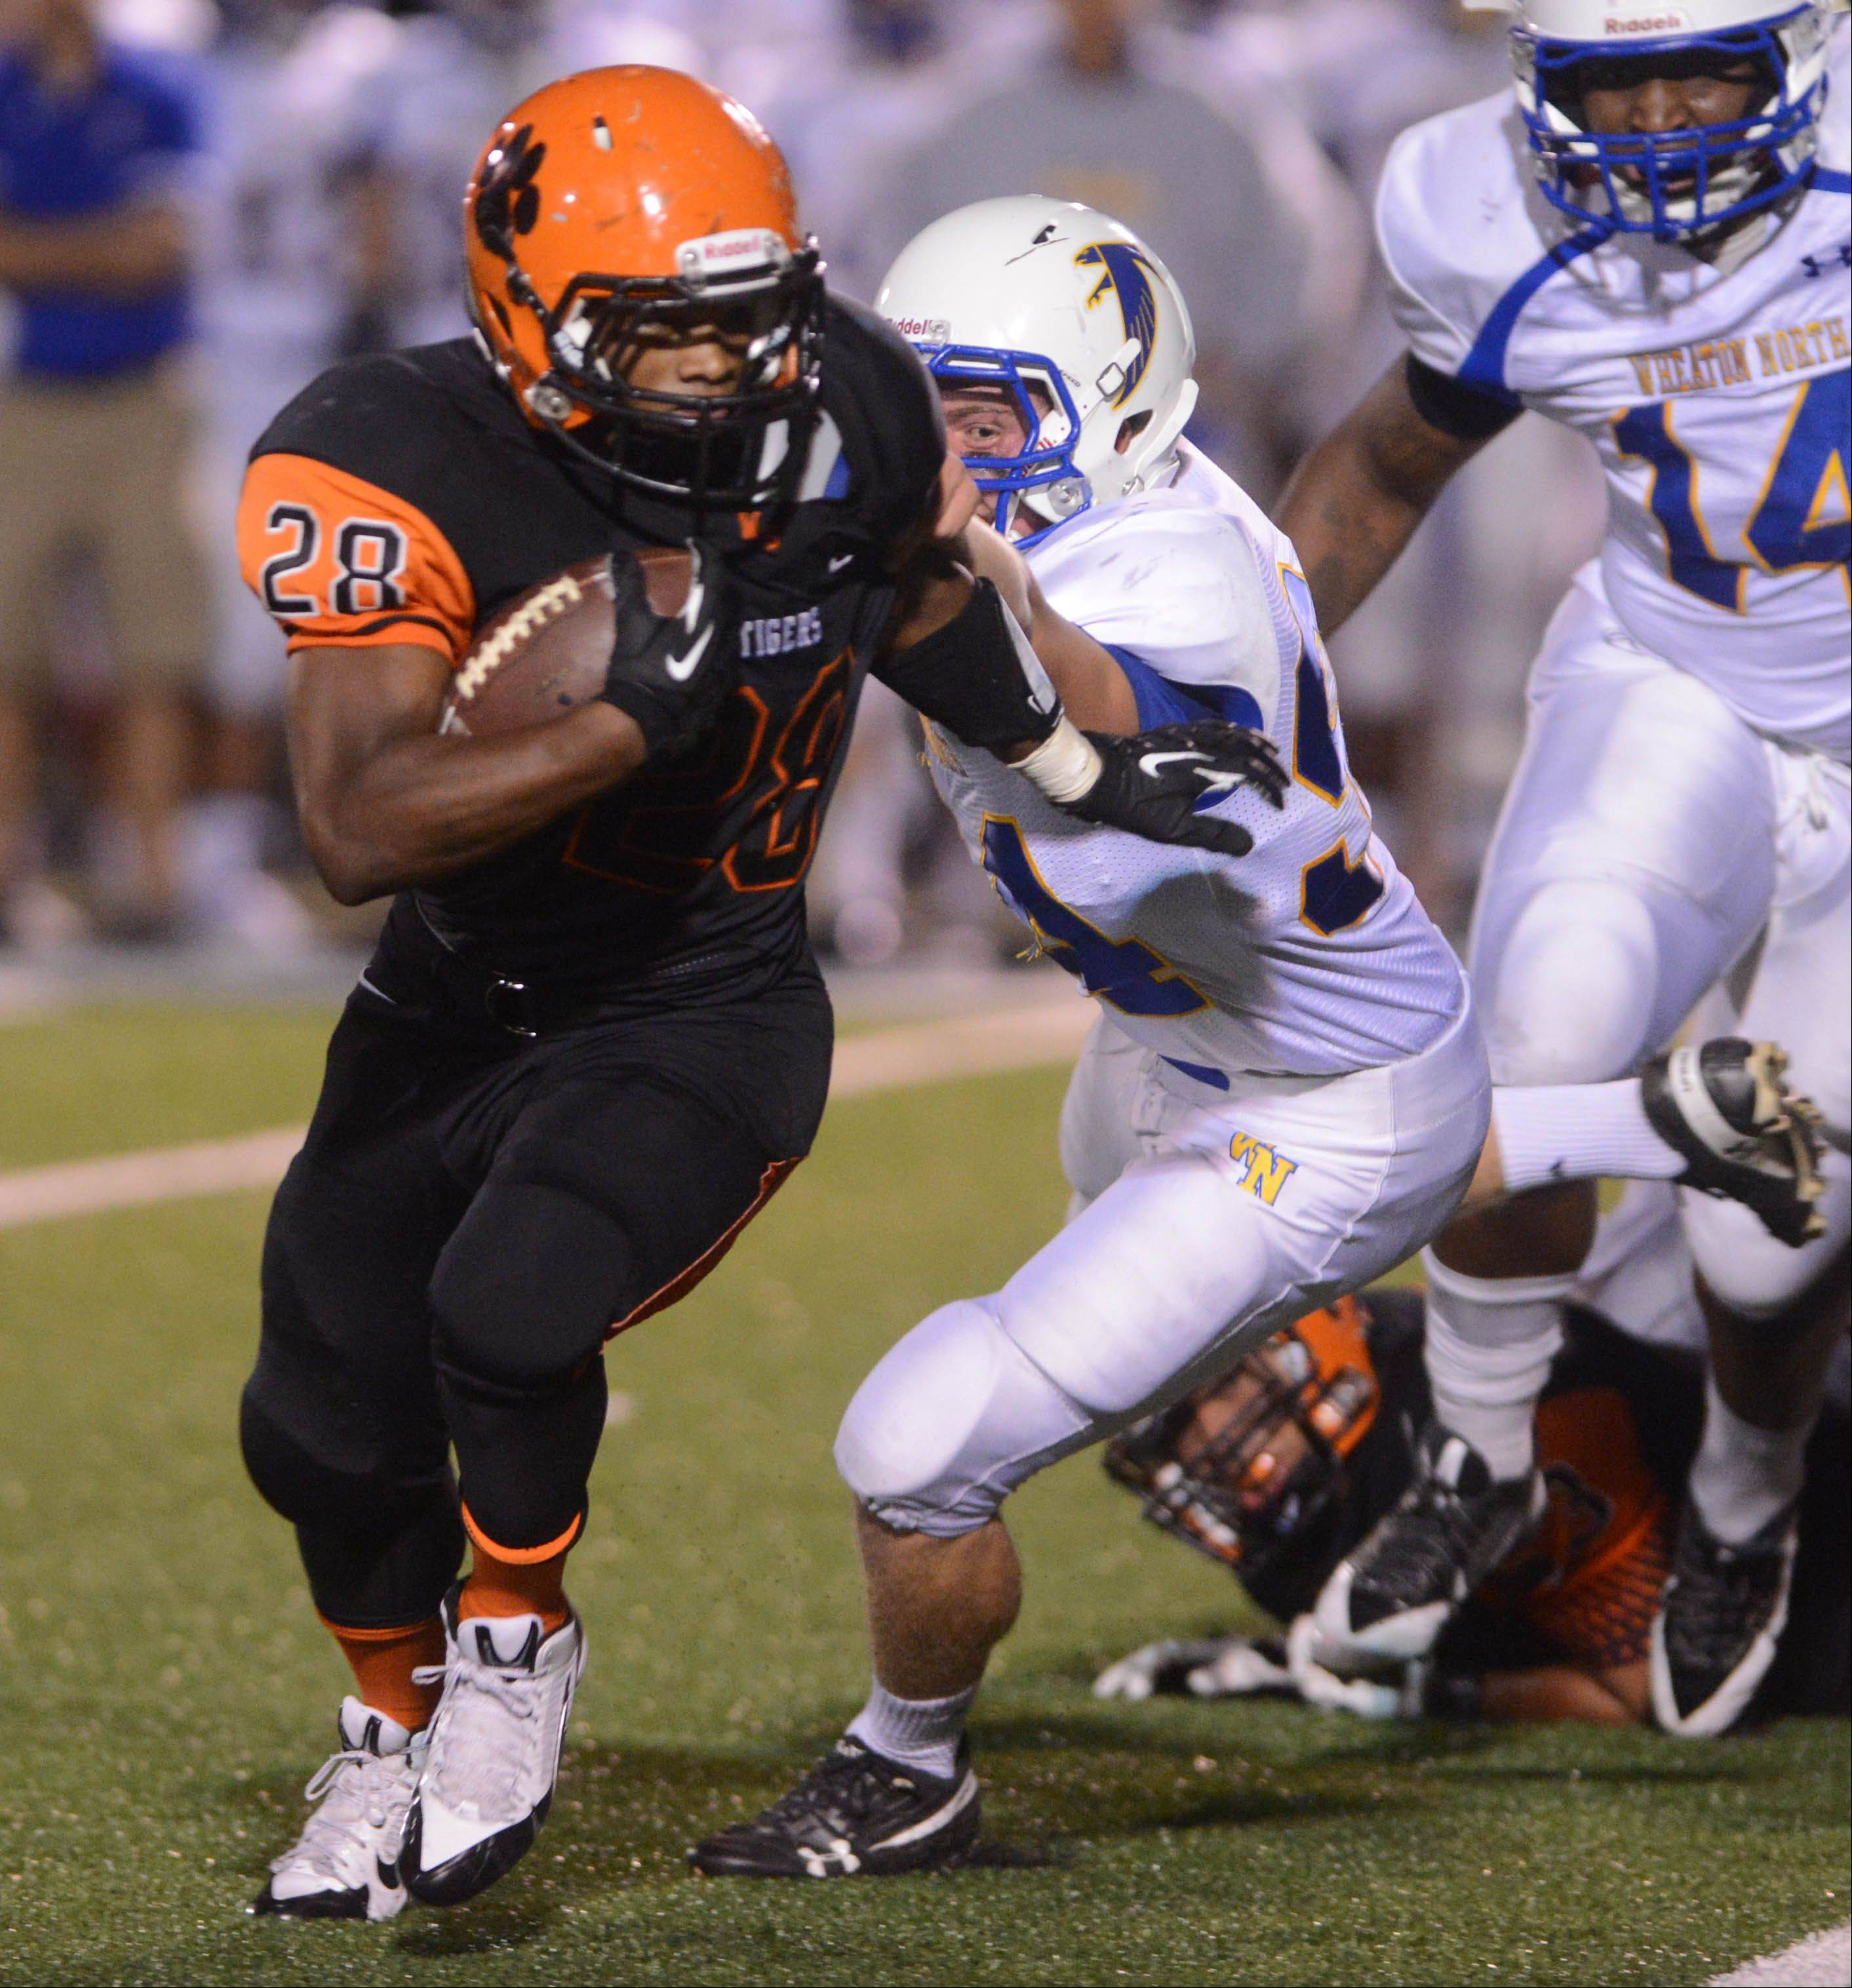 Isaiah Campos of Wheaton Warrenville South out runs a Wheaton North defender.